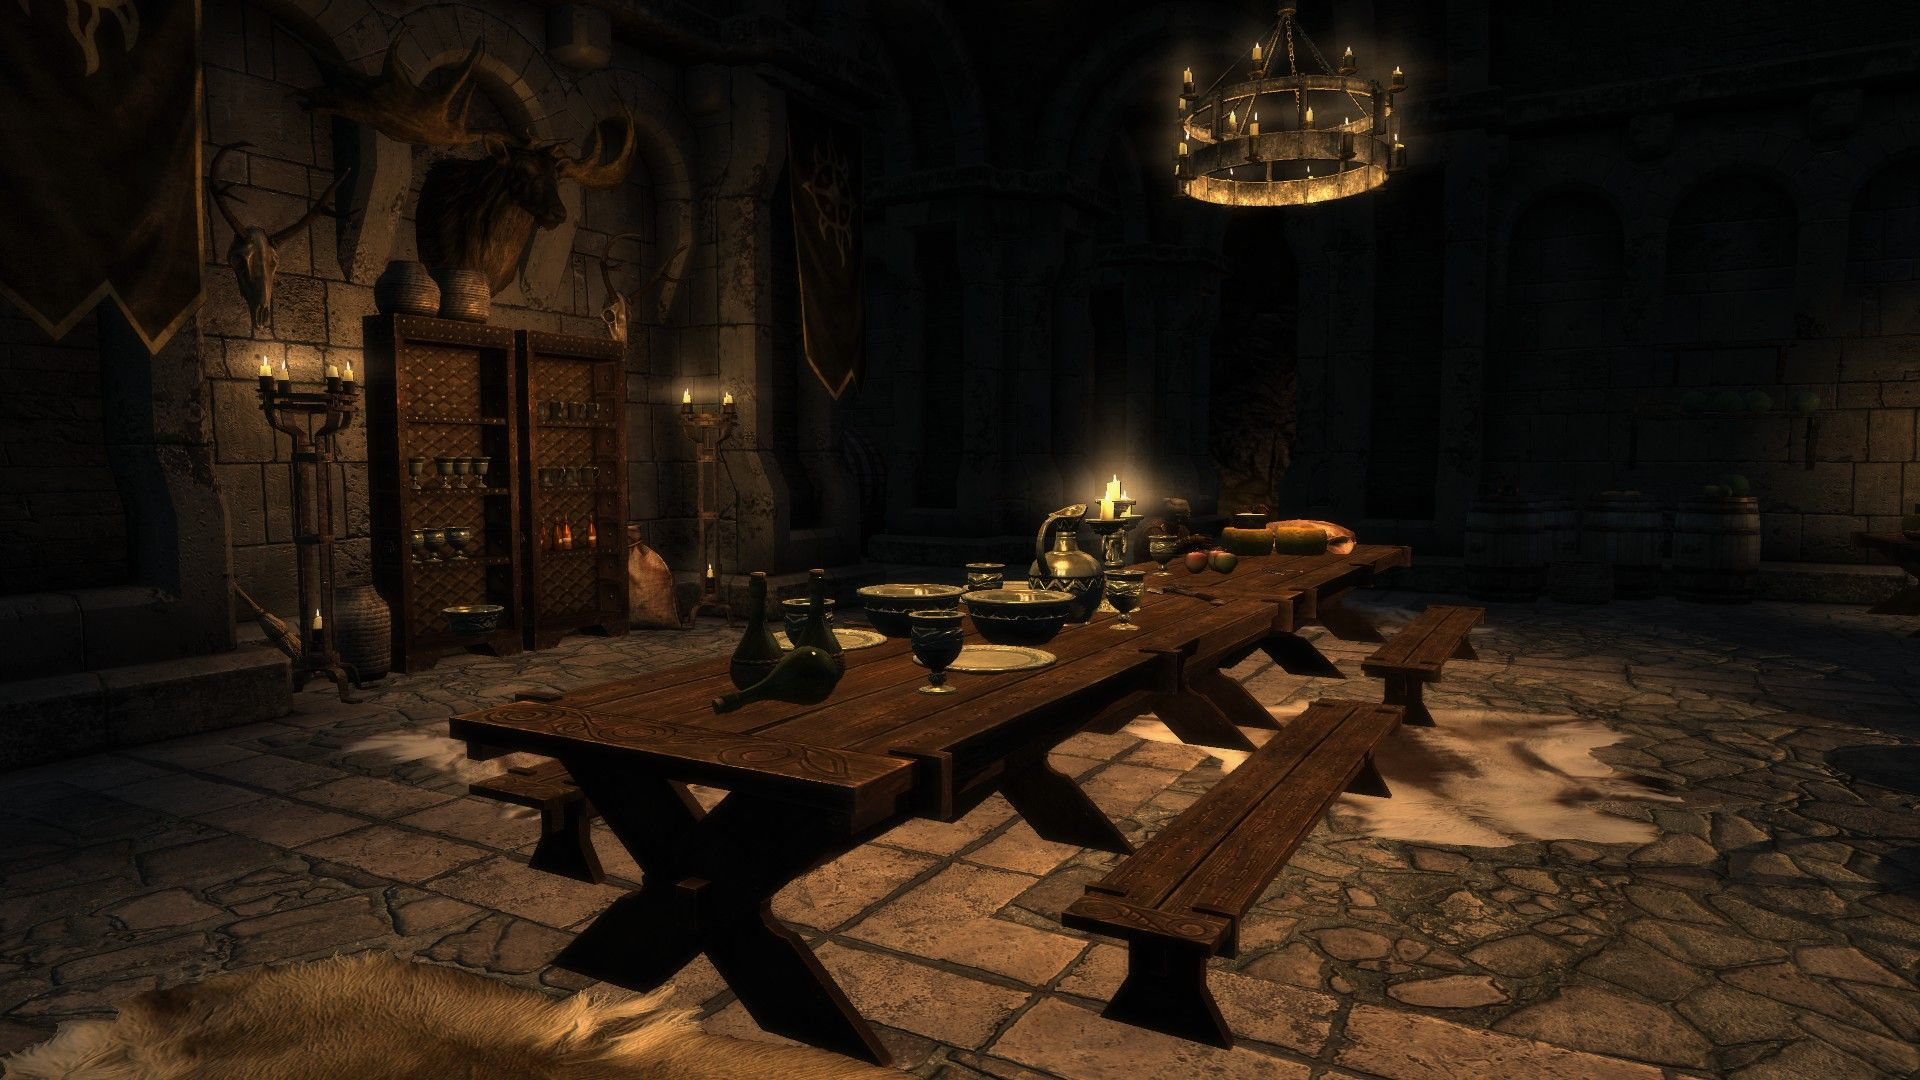 dawnguard reforged at skyrim nexus mods and community fort dawnguard overhaul at skyrim nexus mods and 608